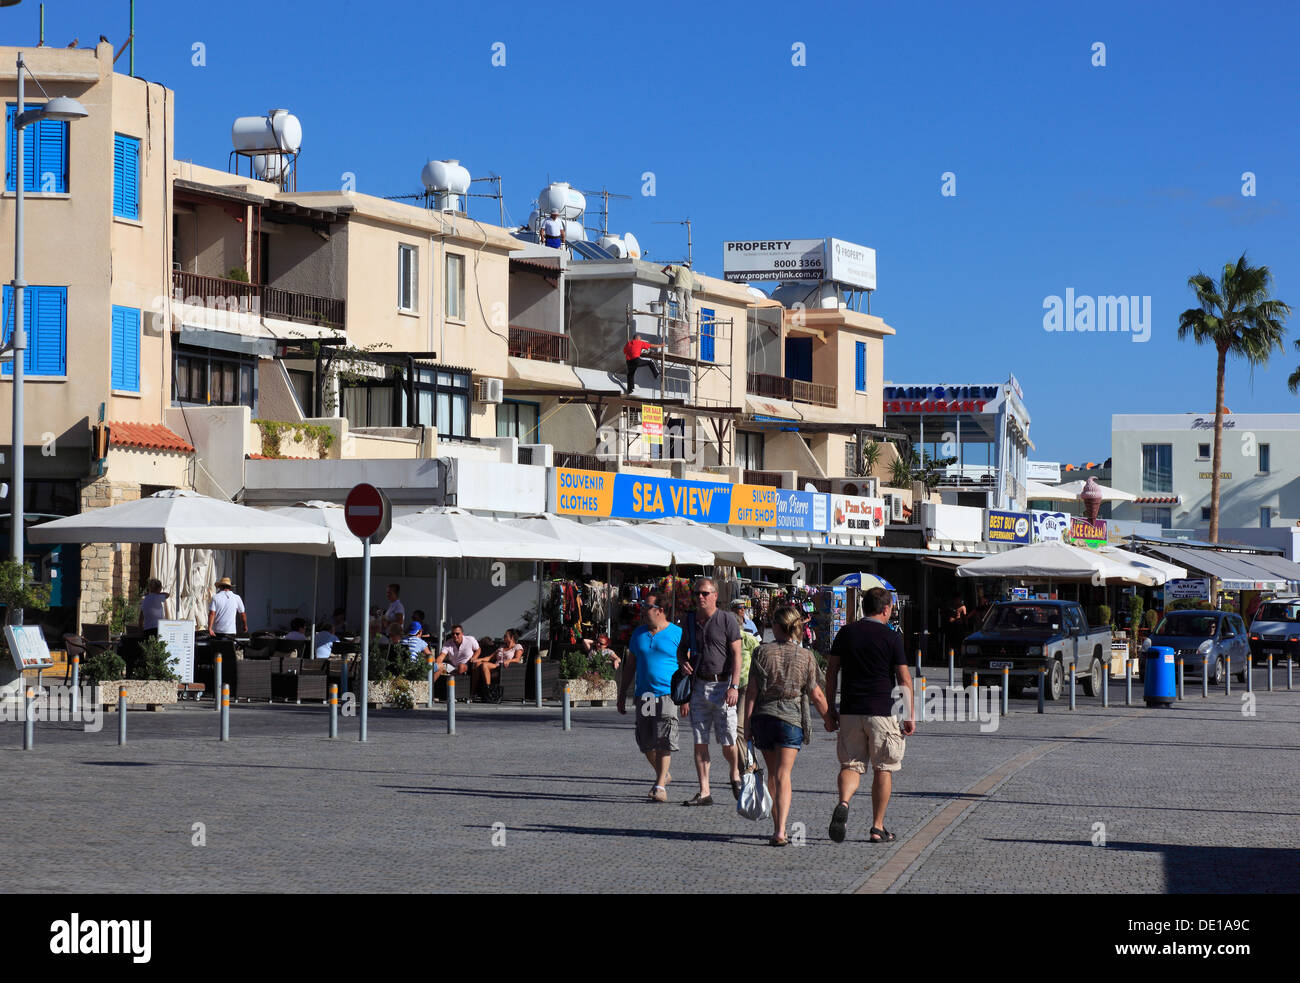 Cyprus Stores directory aims to feature all the stores in Cyprus with links and information for your convenience. Also listed are the biggest Supermarkets in Cyprus and major shopping malls. Also listed are the biggest Supermarkets in Cyprus and major shopping malls.